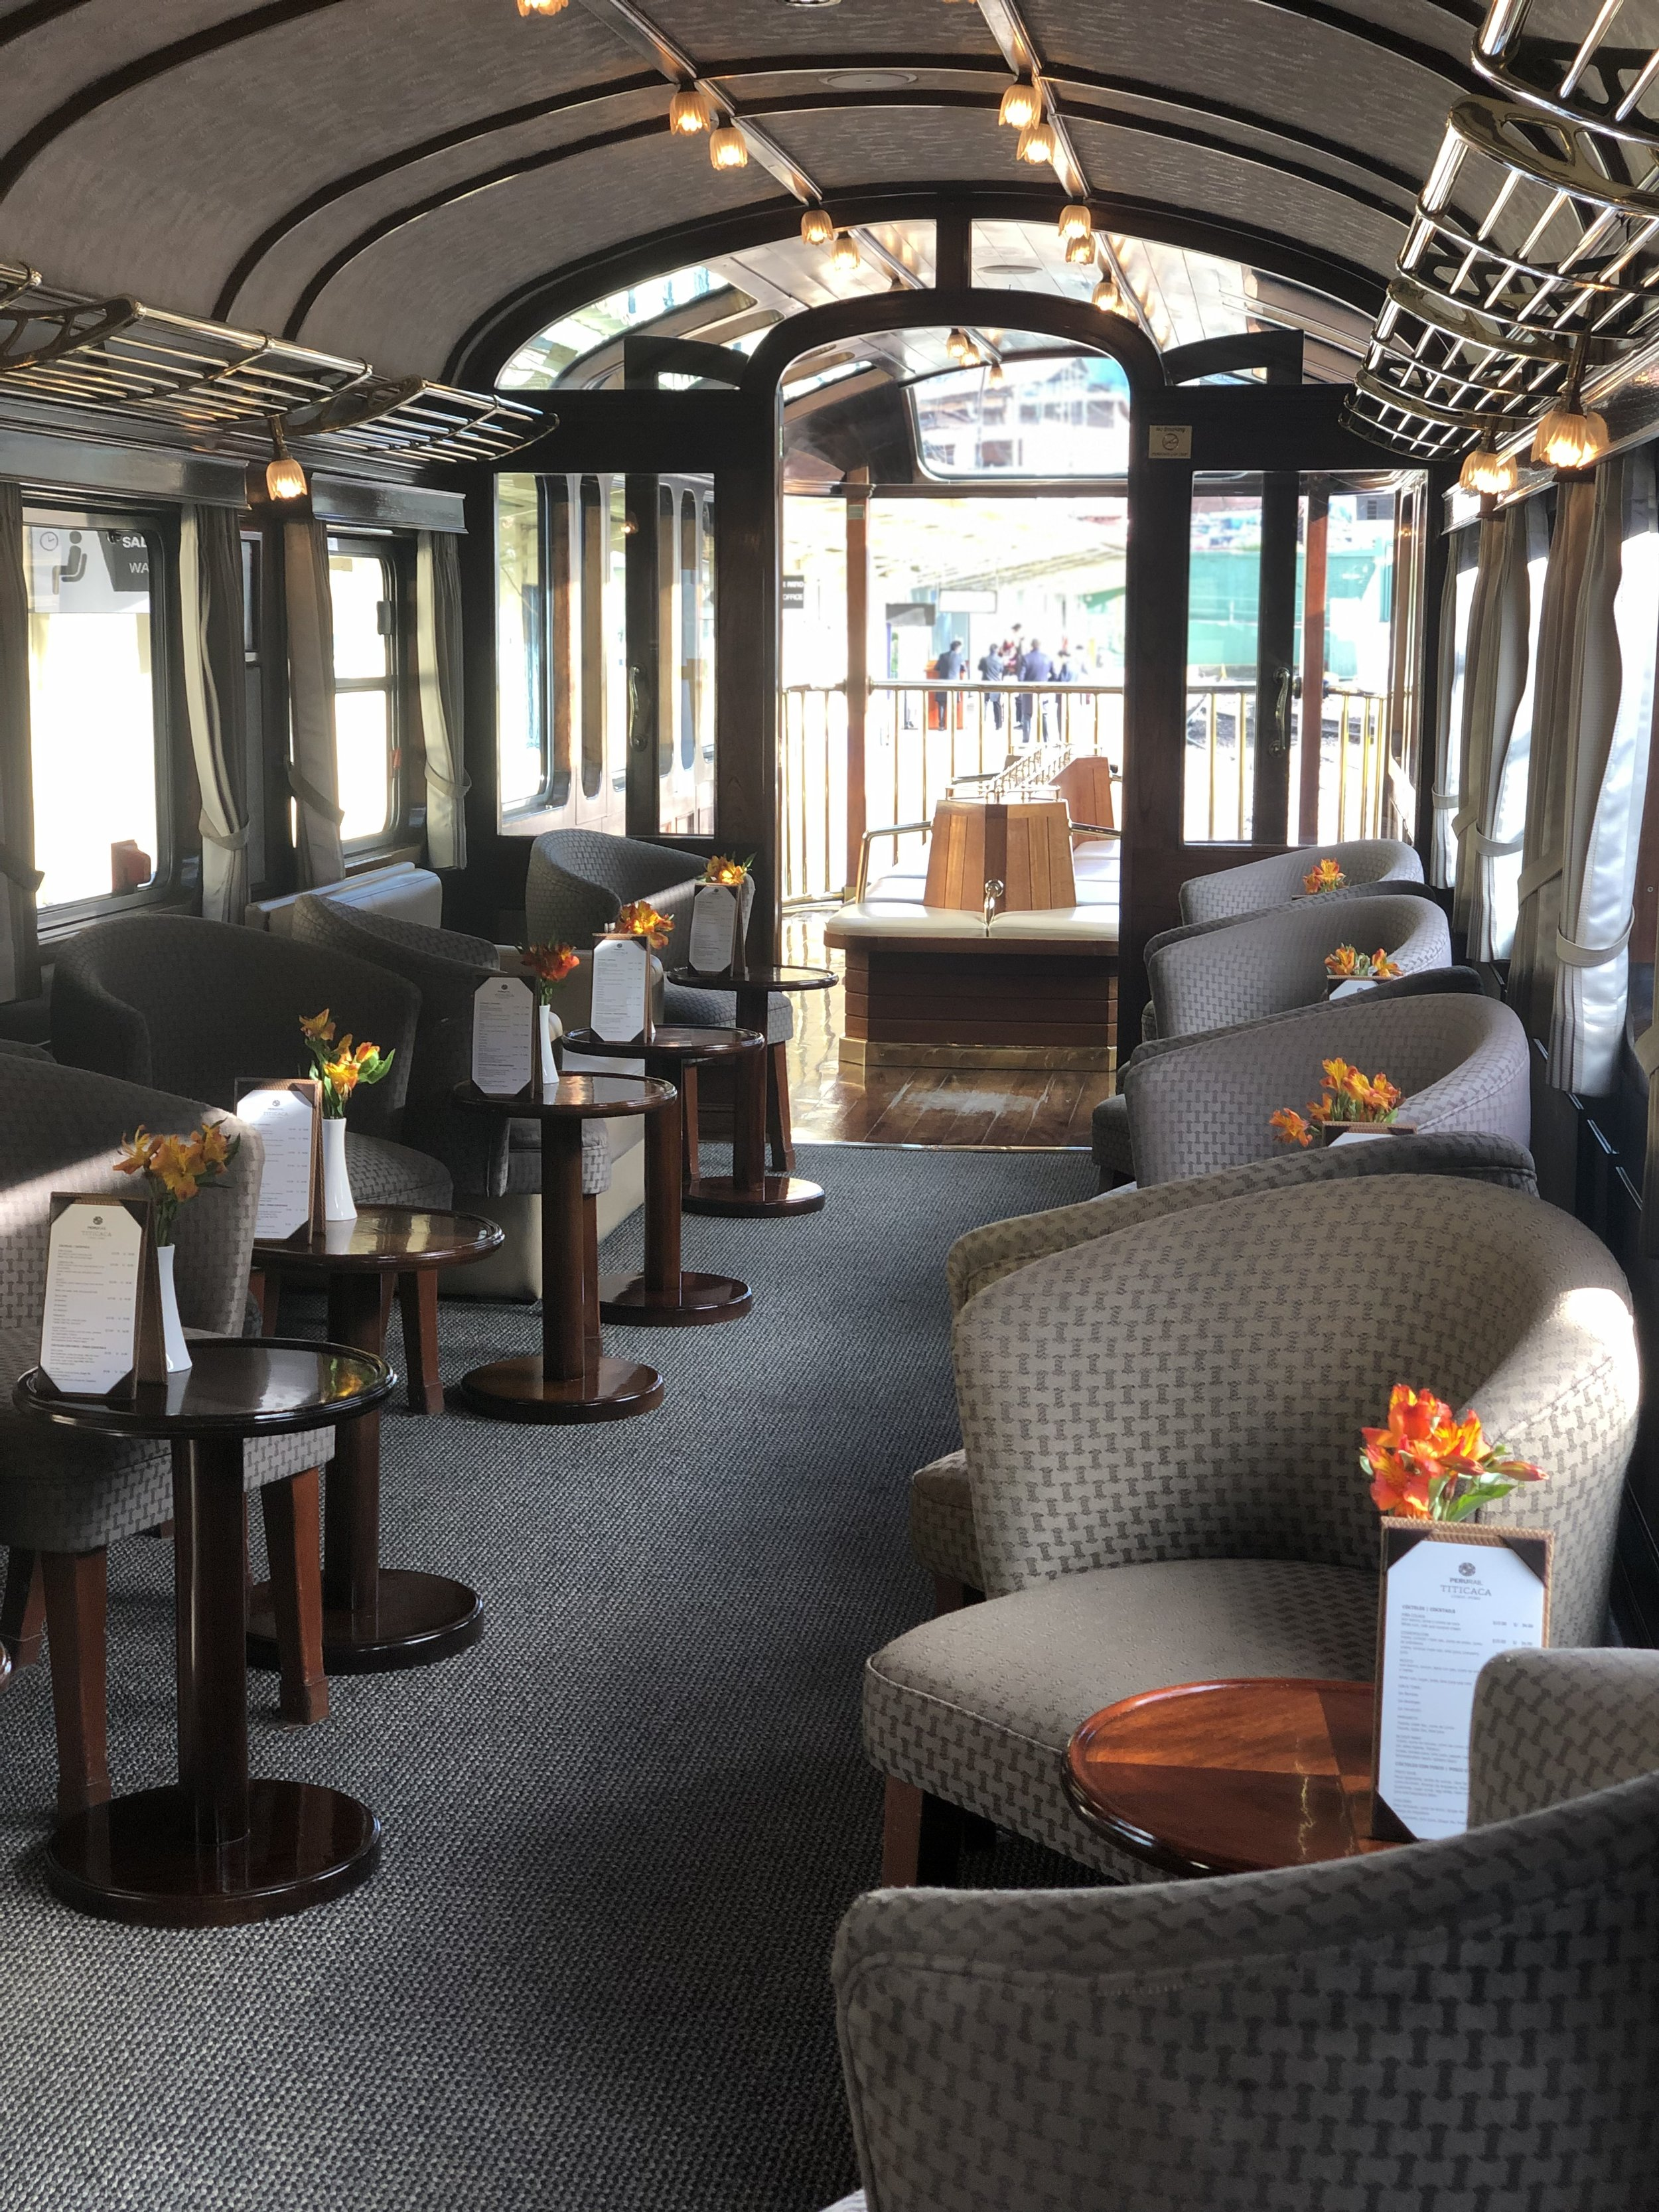 Perurail-Peru-Cusco-Puno-1920-train-Southamerica-Travel-review-bar-car